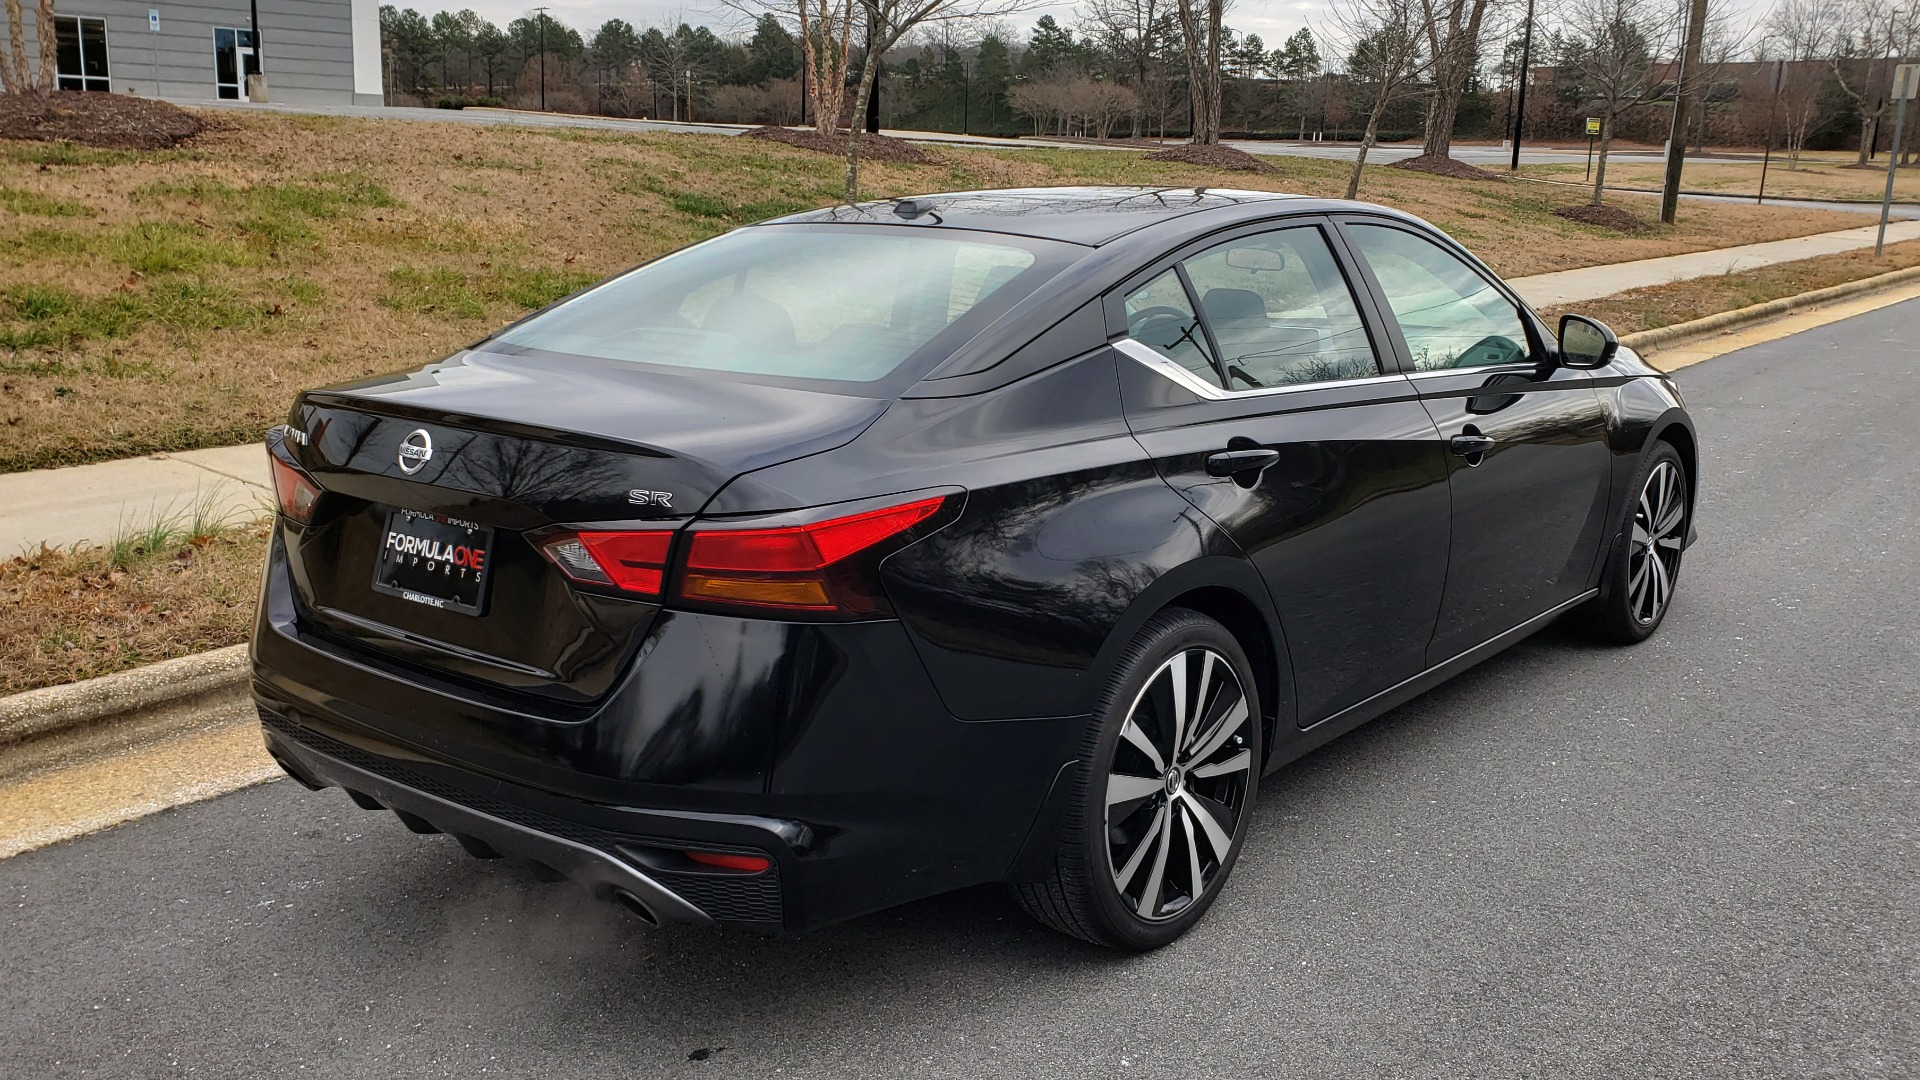 Used 2019 Nissan ALTIMA 2.5 SR PREMIUM / 2.5L / CVT TRANS / HTD STS / SUNROOF / REARVIEW for sale Sold at Formula Imports in Charlotte NC 28227 8